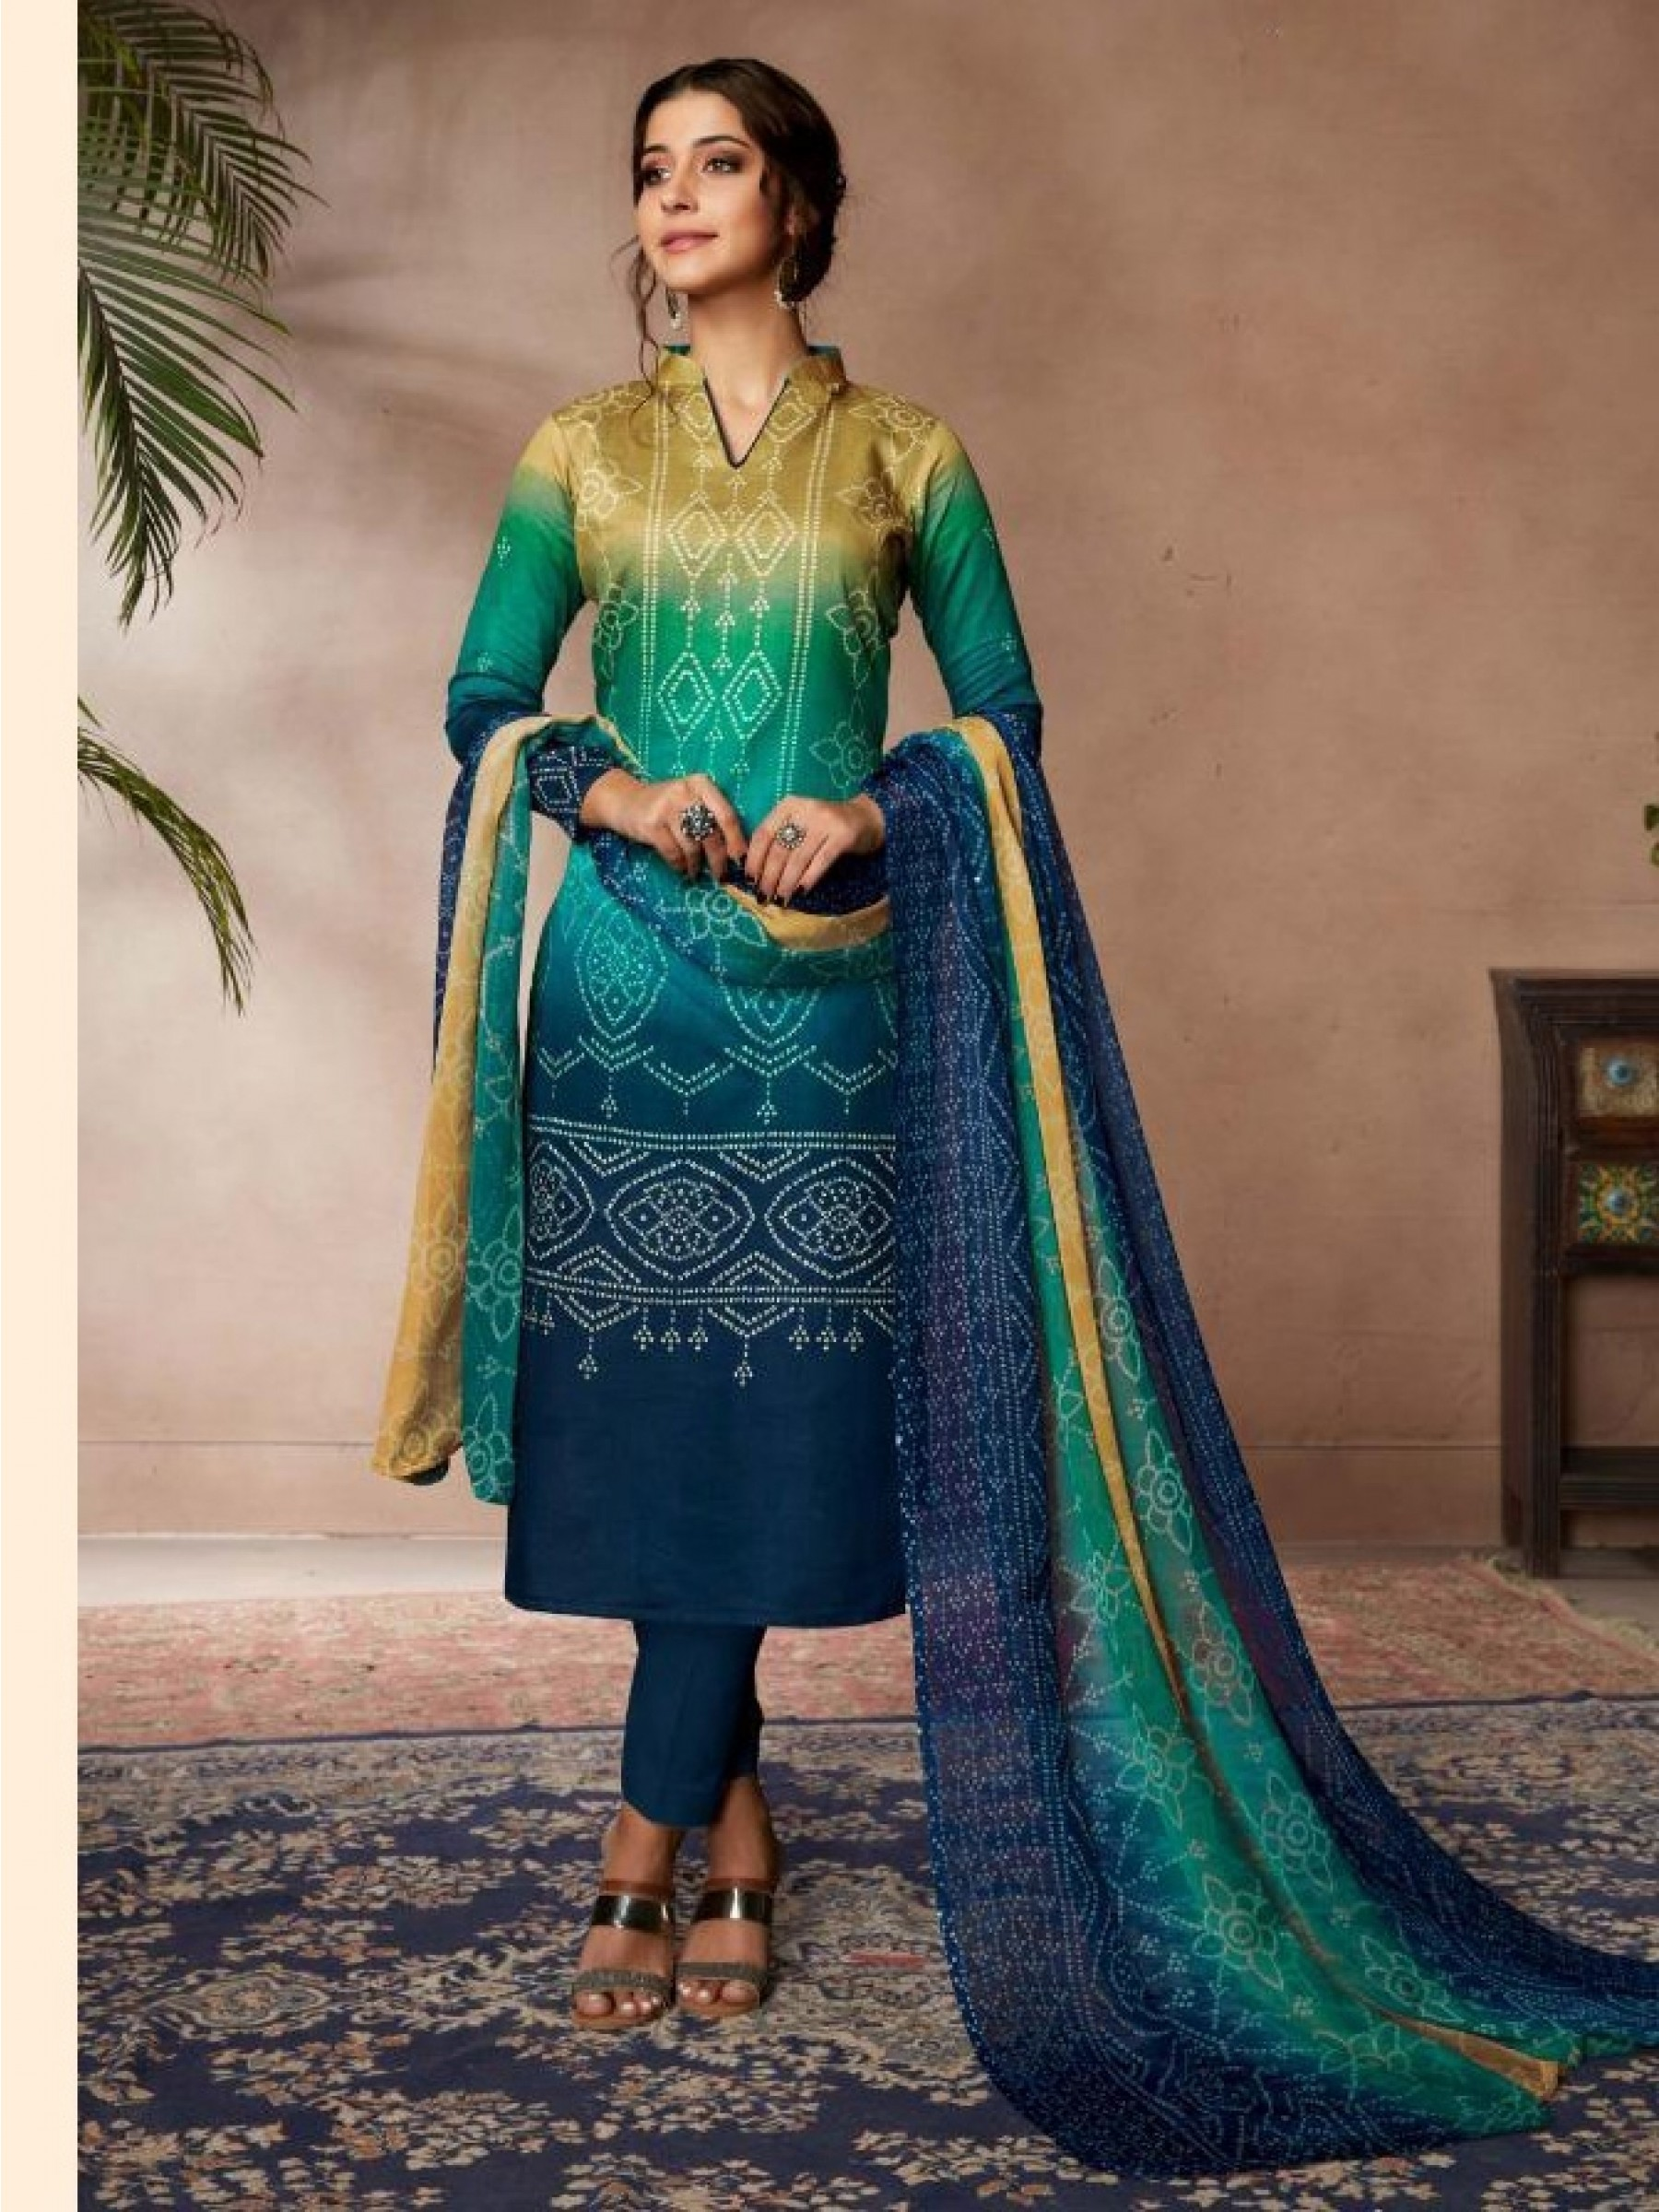 Zam Sateen Casual Wear Suit In Blue Color With Jaipuri Print Casual Wear Suits Anarkali Suits